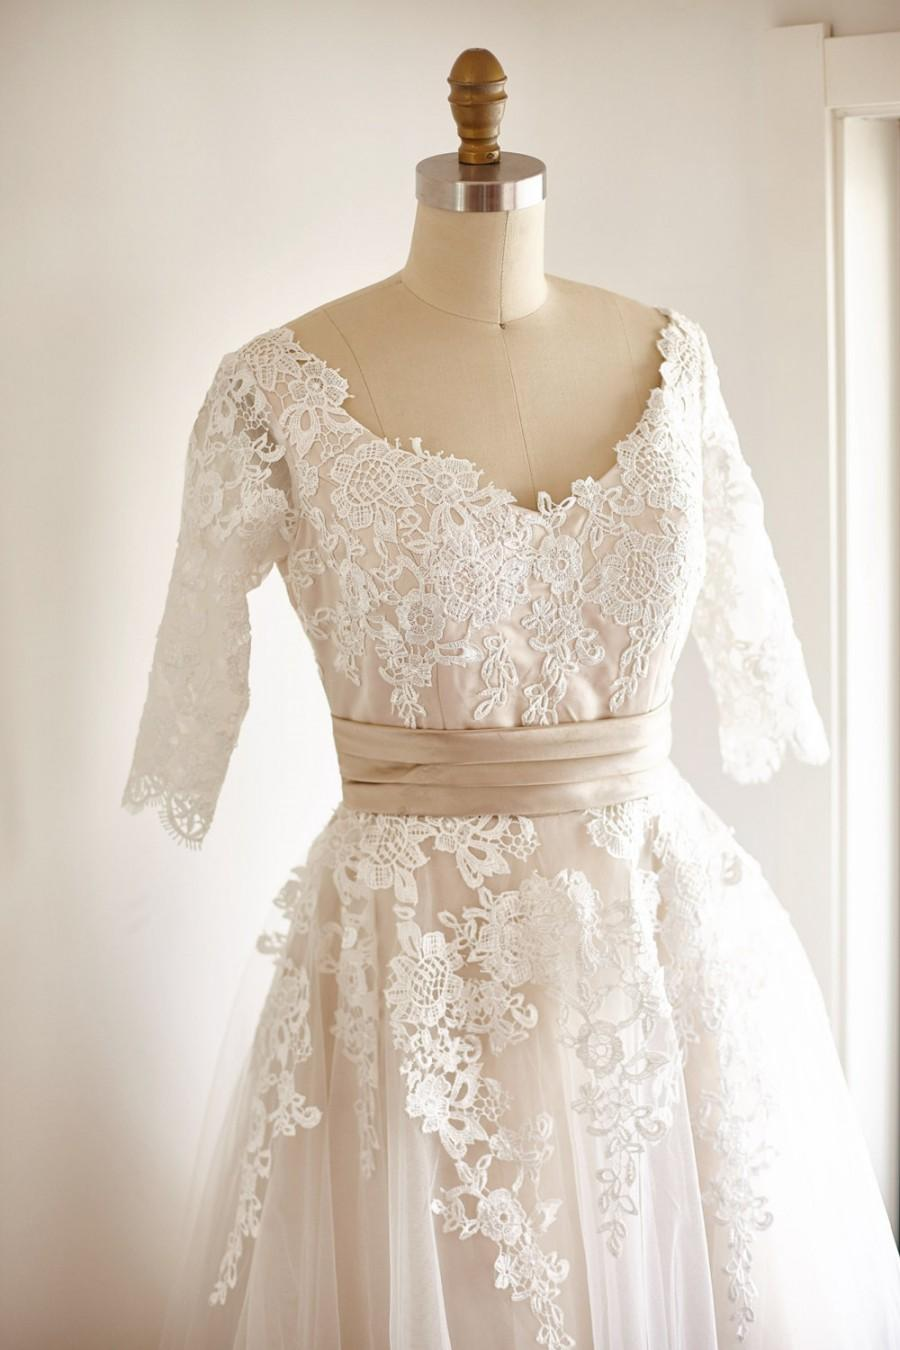 Mariage - V Back Elbow Quarter Sleeves Lace Tulle Tea Short Wedding Dress  Bridal Gown with Champagne Lining